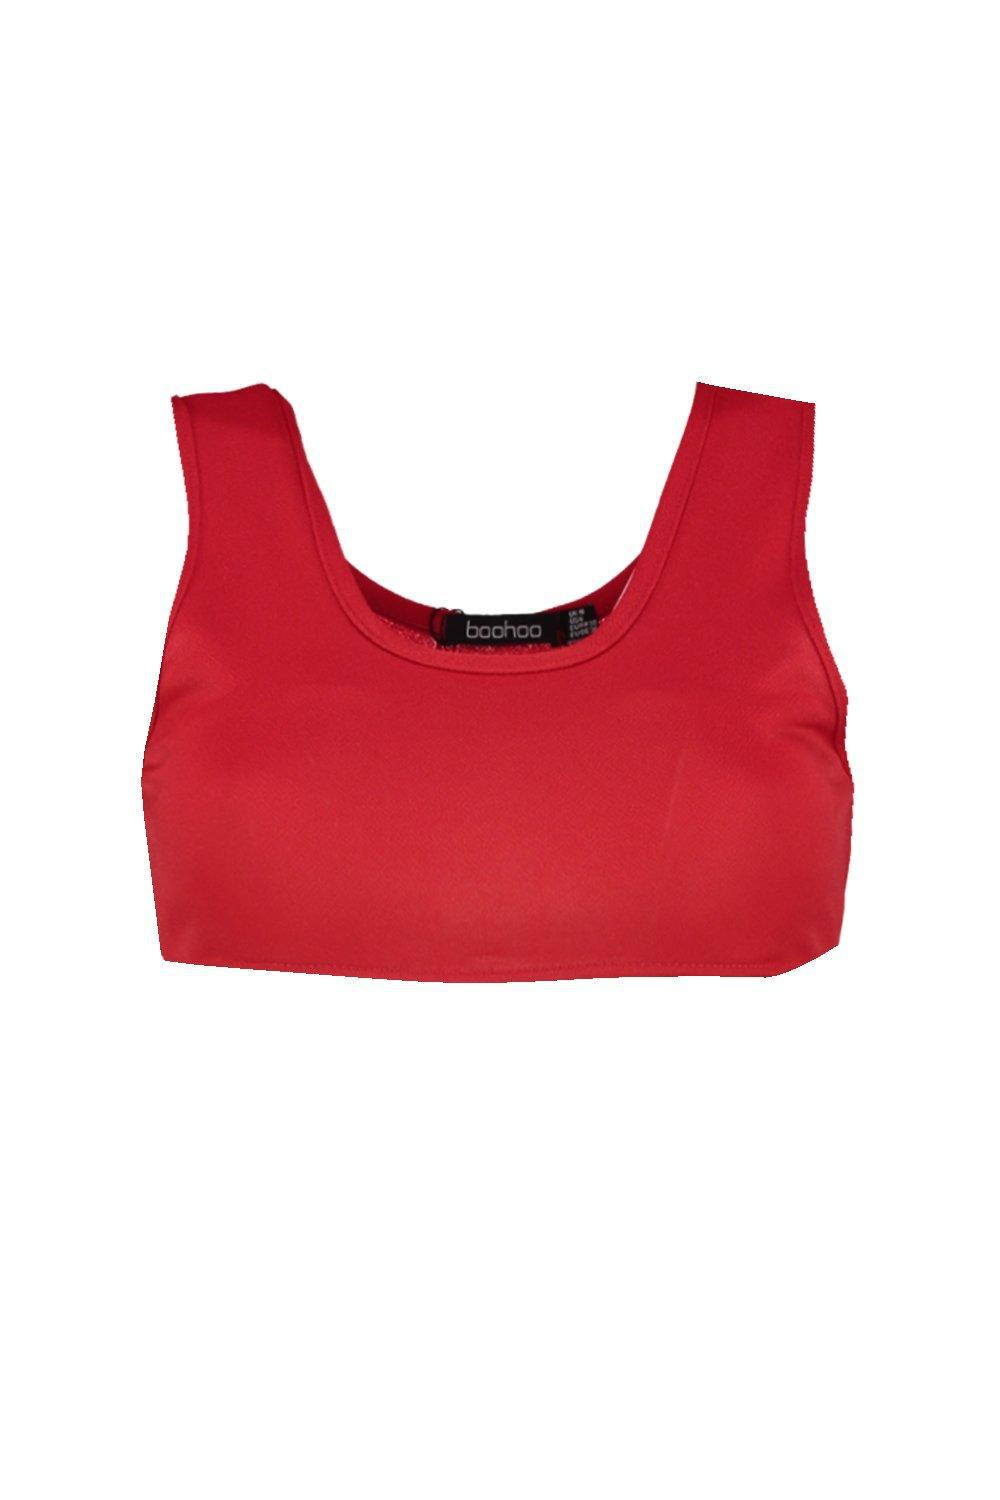 2d154b70b0 Boohoo Emma Extreme Crop Bralet in Red - Lyst